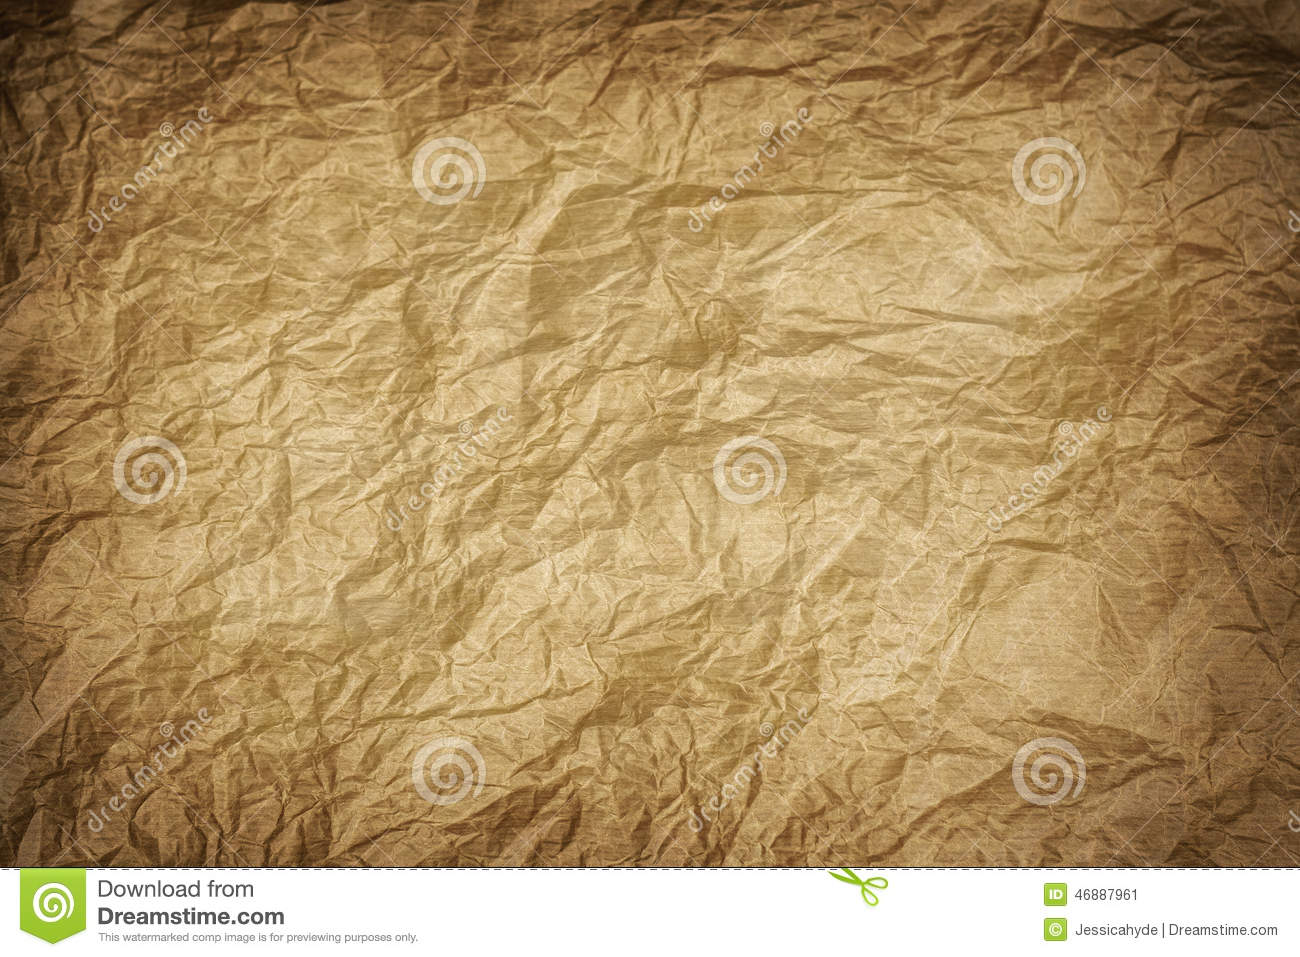 Old carboard paper texture